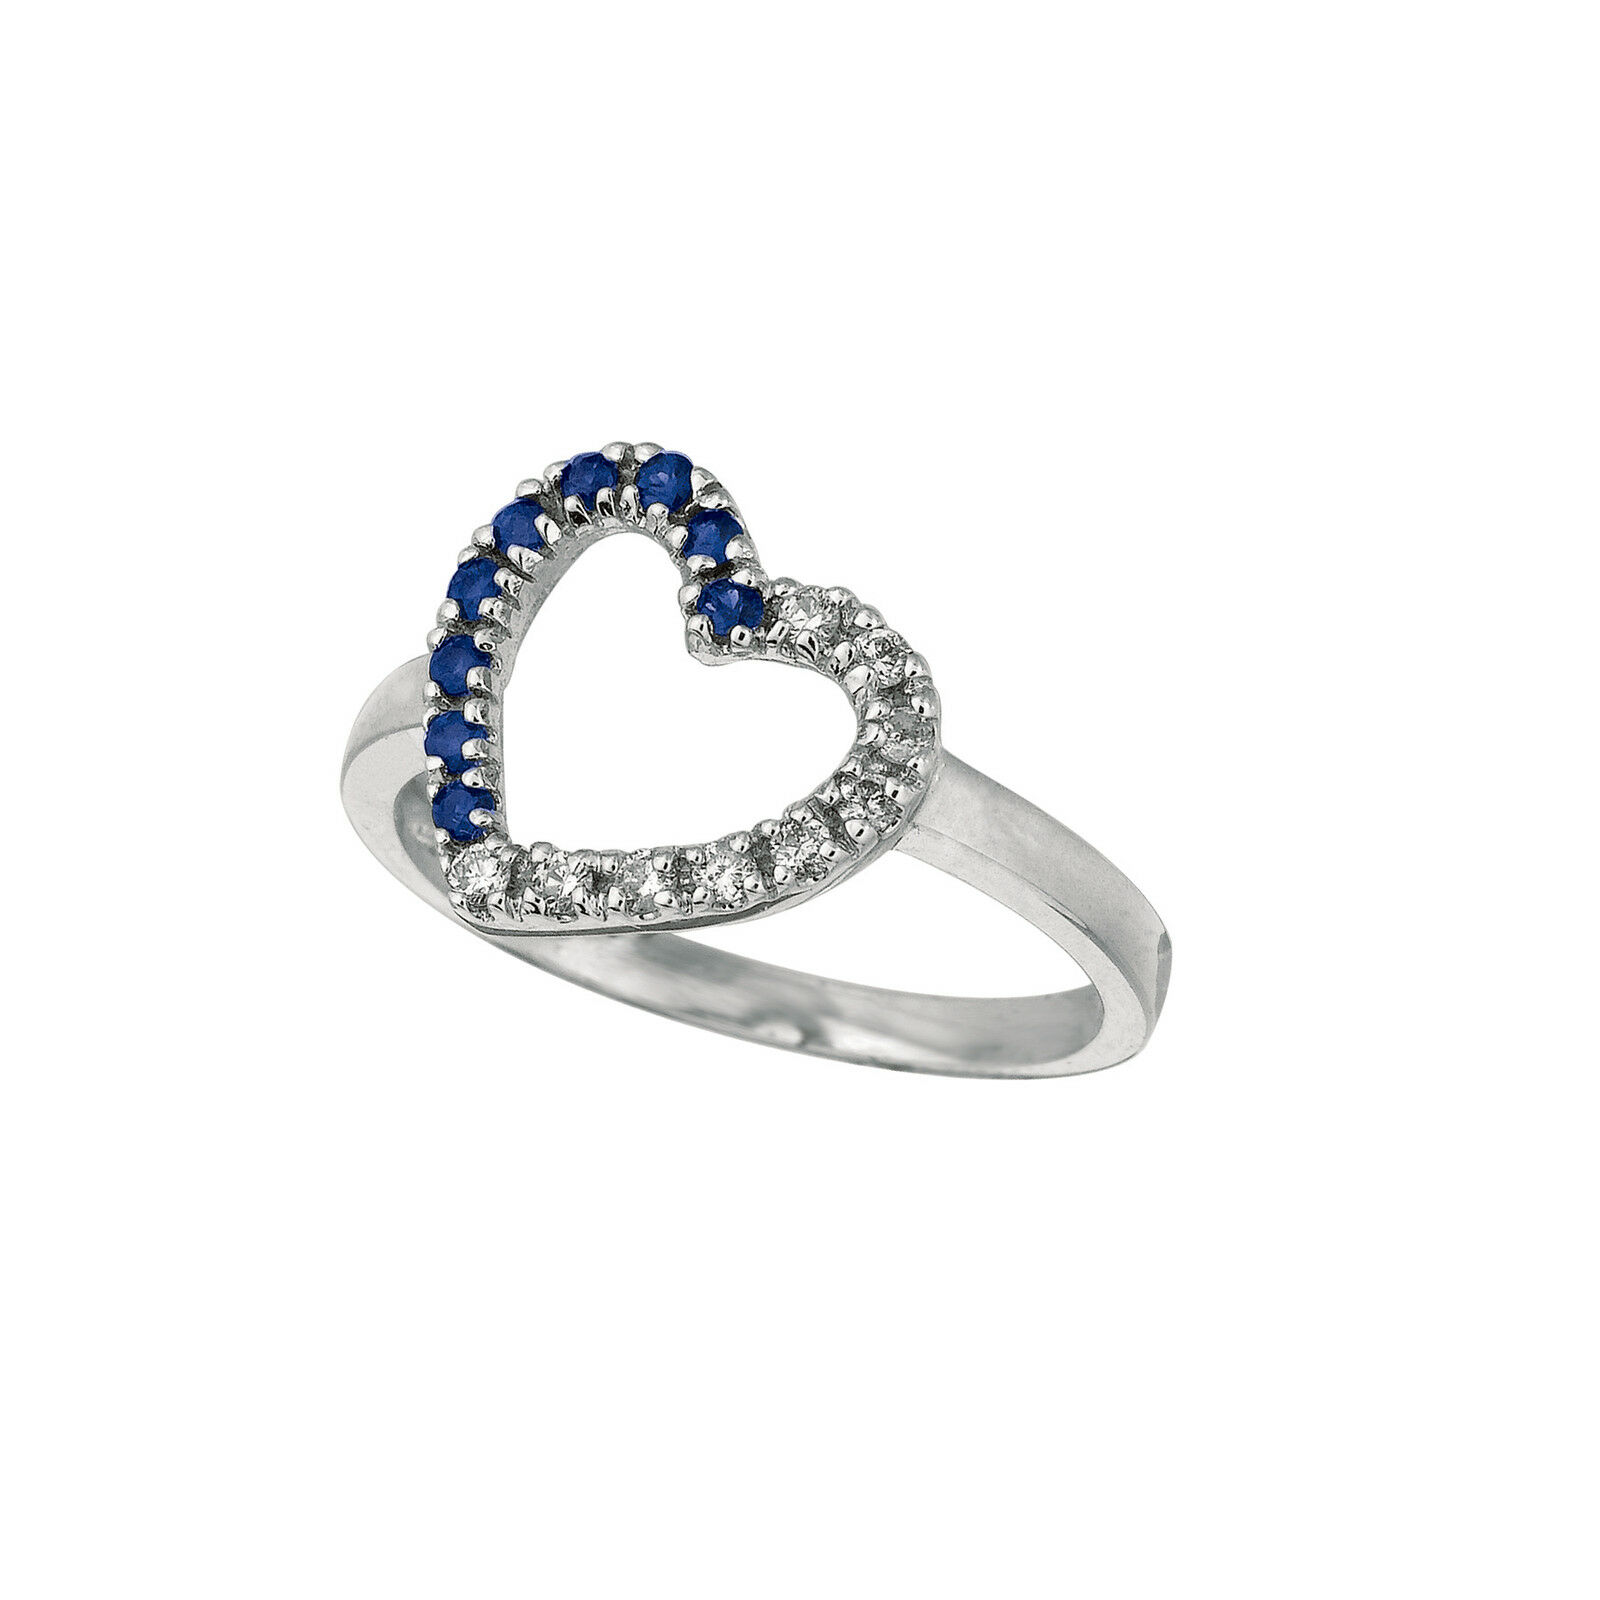 0.13 CT Diamond & Sapphire Heart Ring Set In 14K White gold IDJR5988WDS